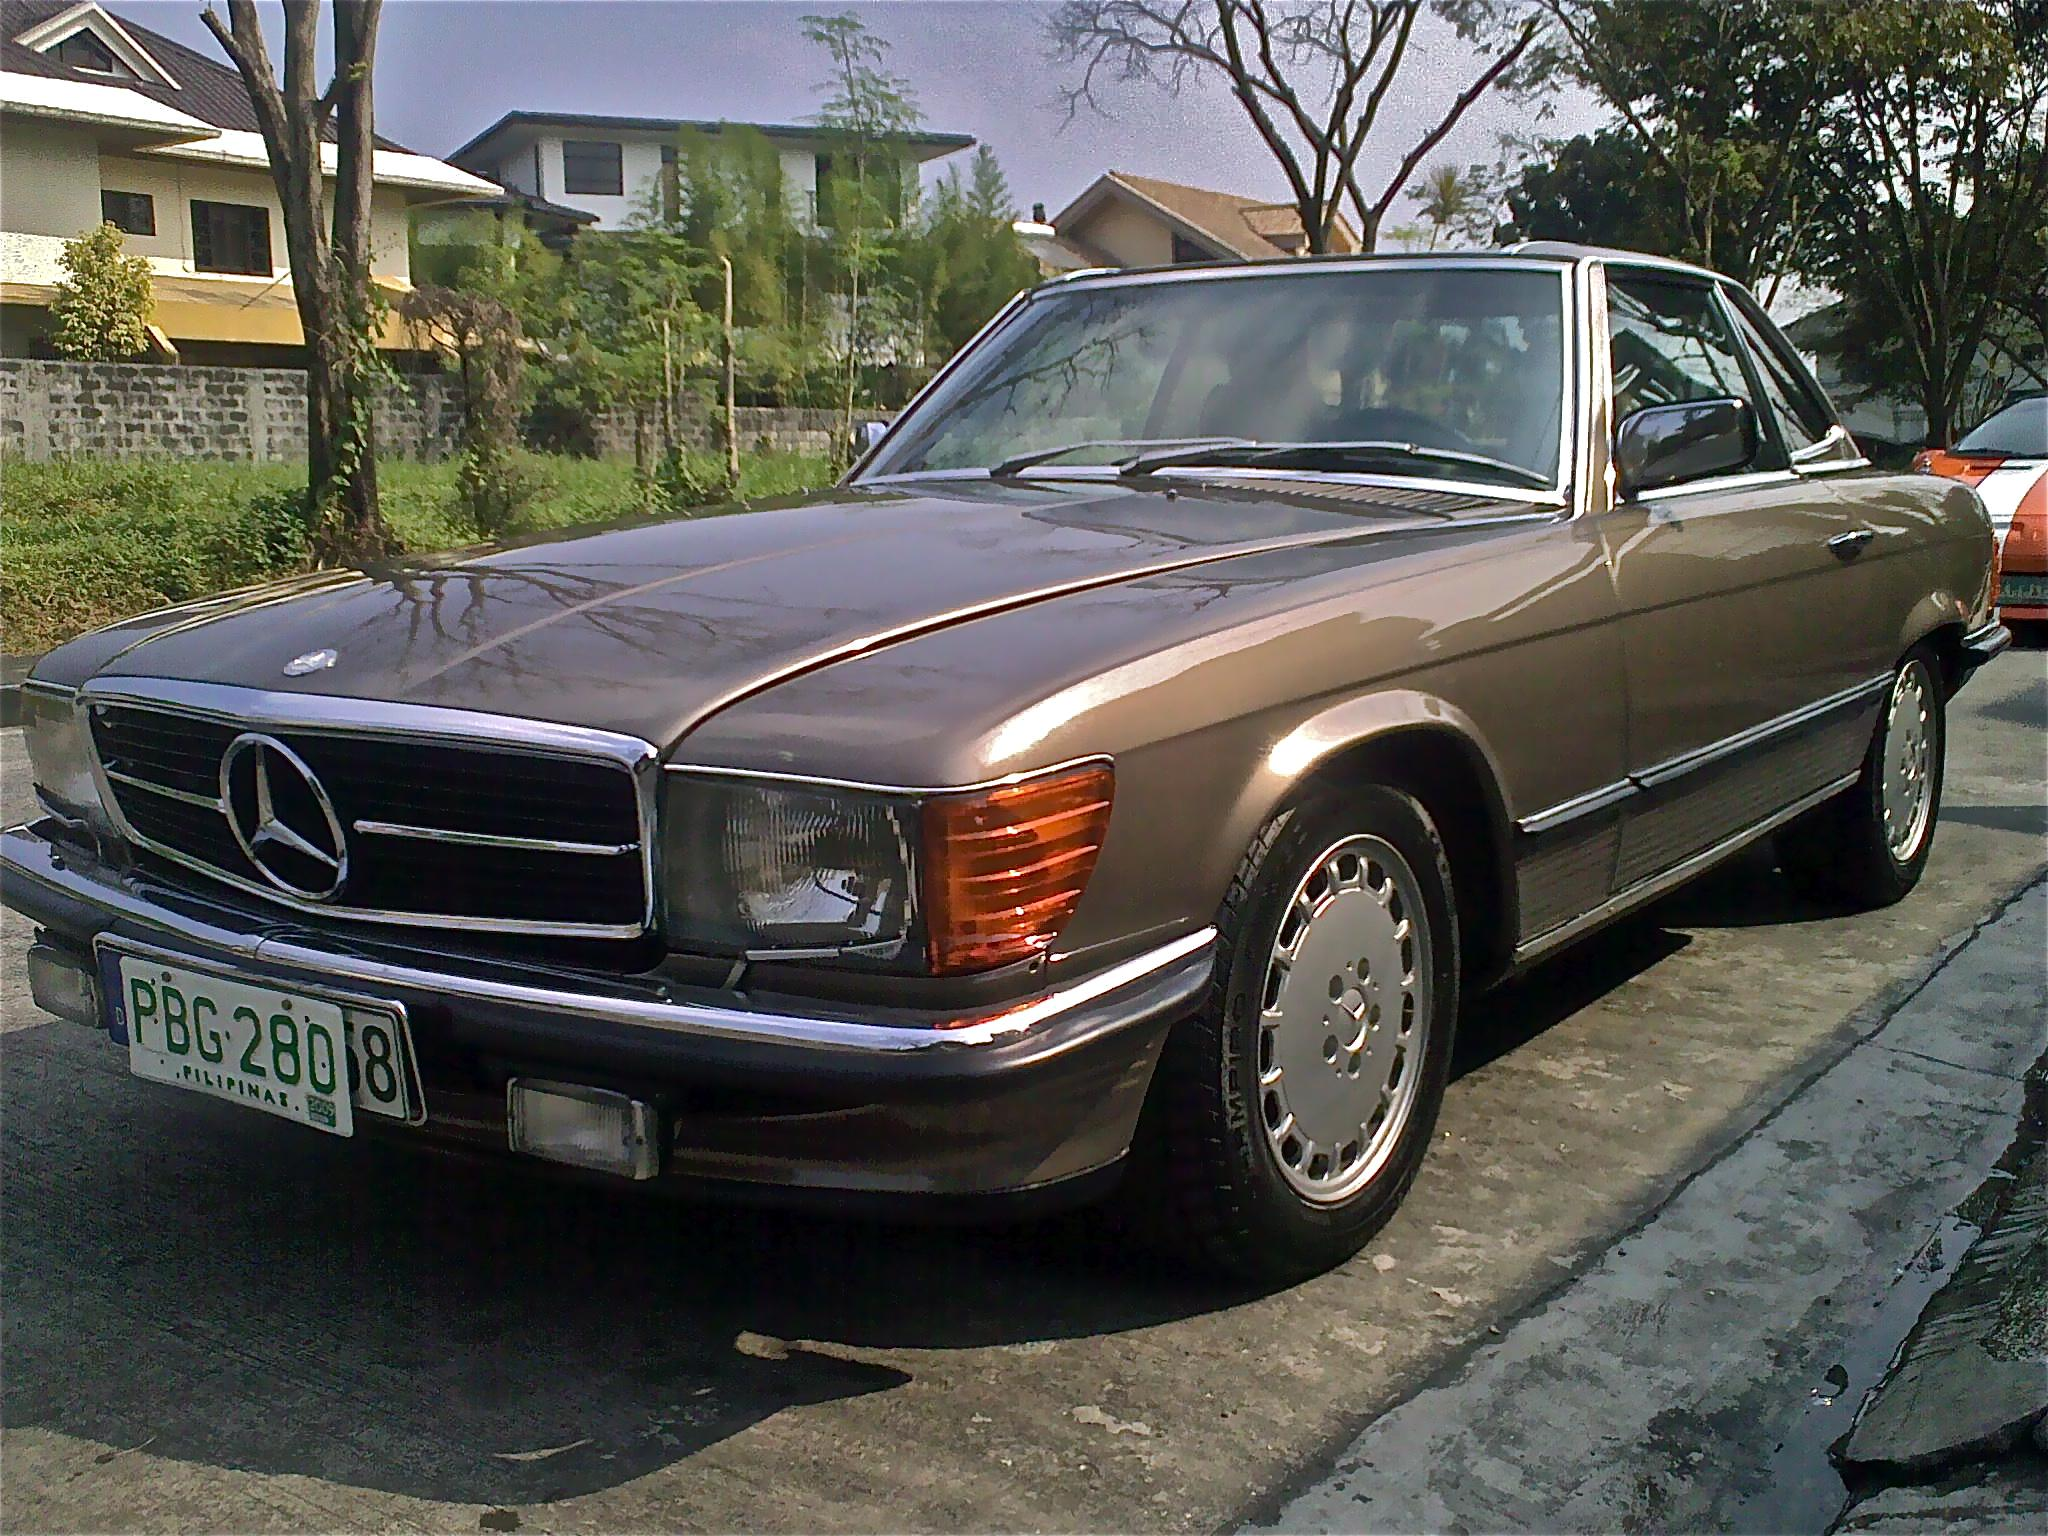 Amrider 1989 mercedes benz 560sl specs photos for Mercedes benz specs